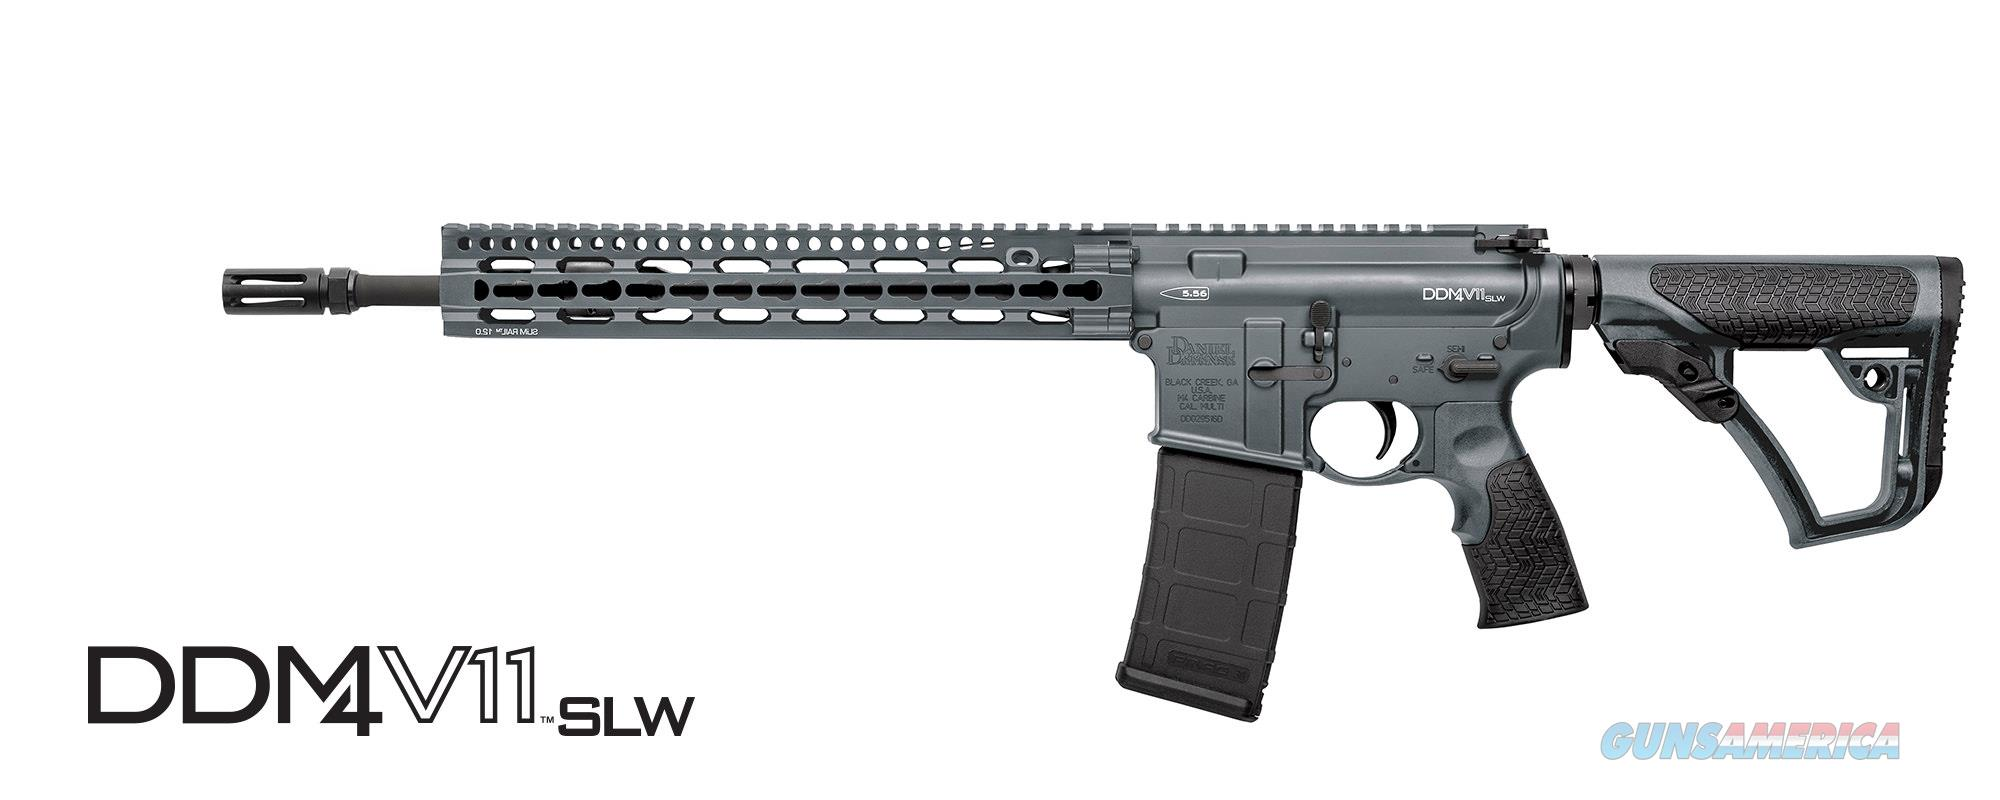 RARE in hard to get color! DANIEL DEFENSE M4 CARBINE V11 LW SLW TORNADO GREY  Guns > Rifles > Daniel Defense > Complete Rifles